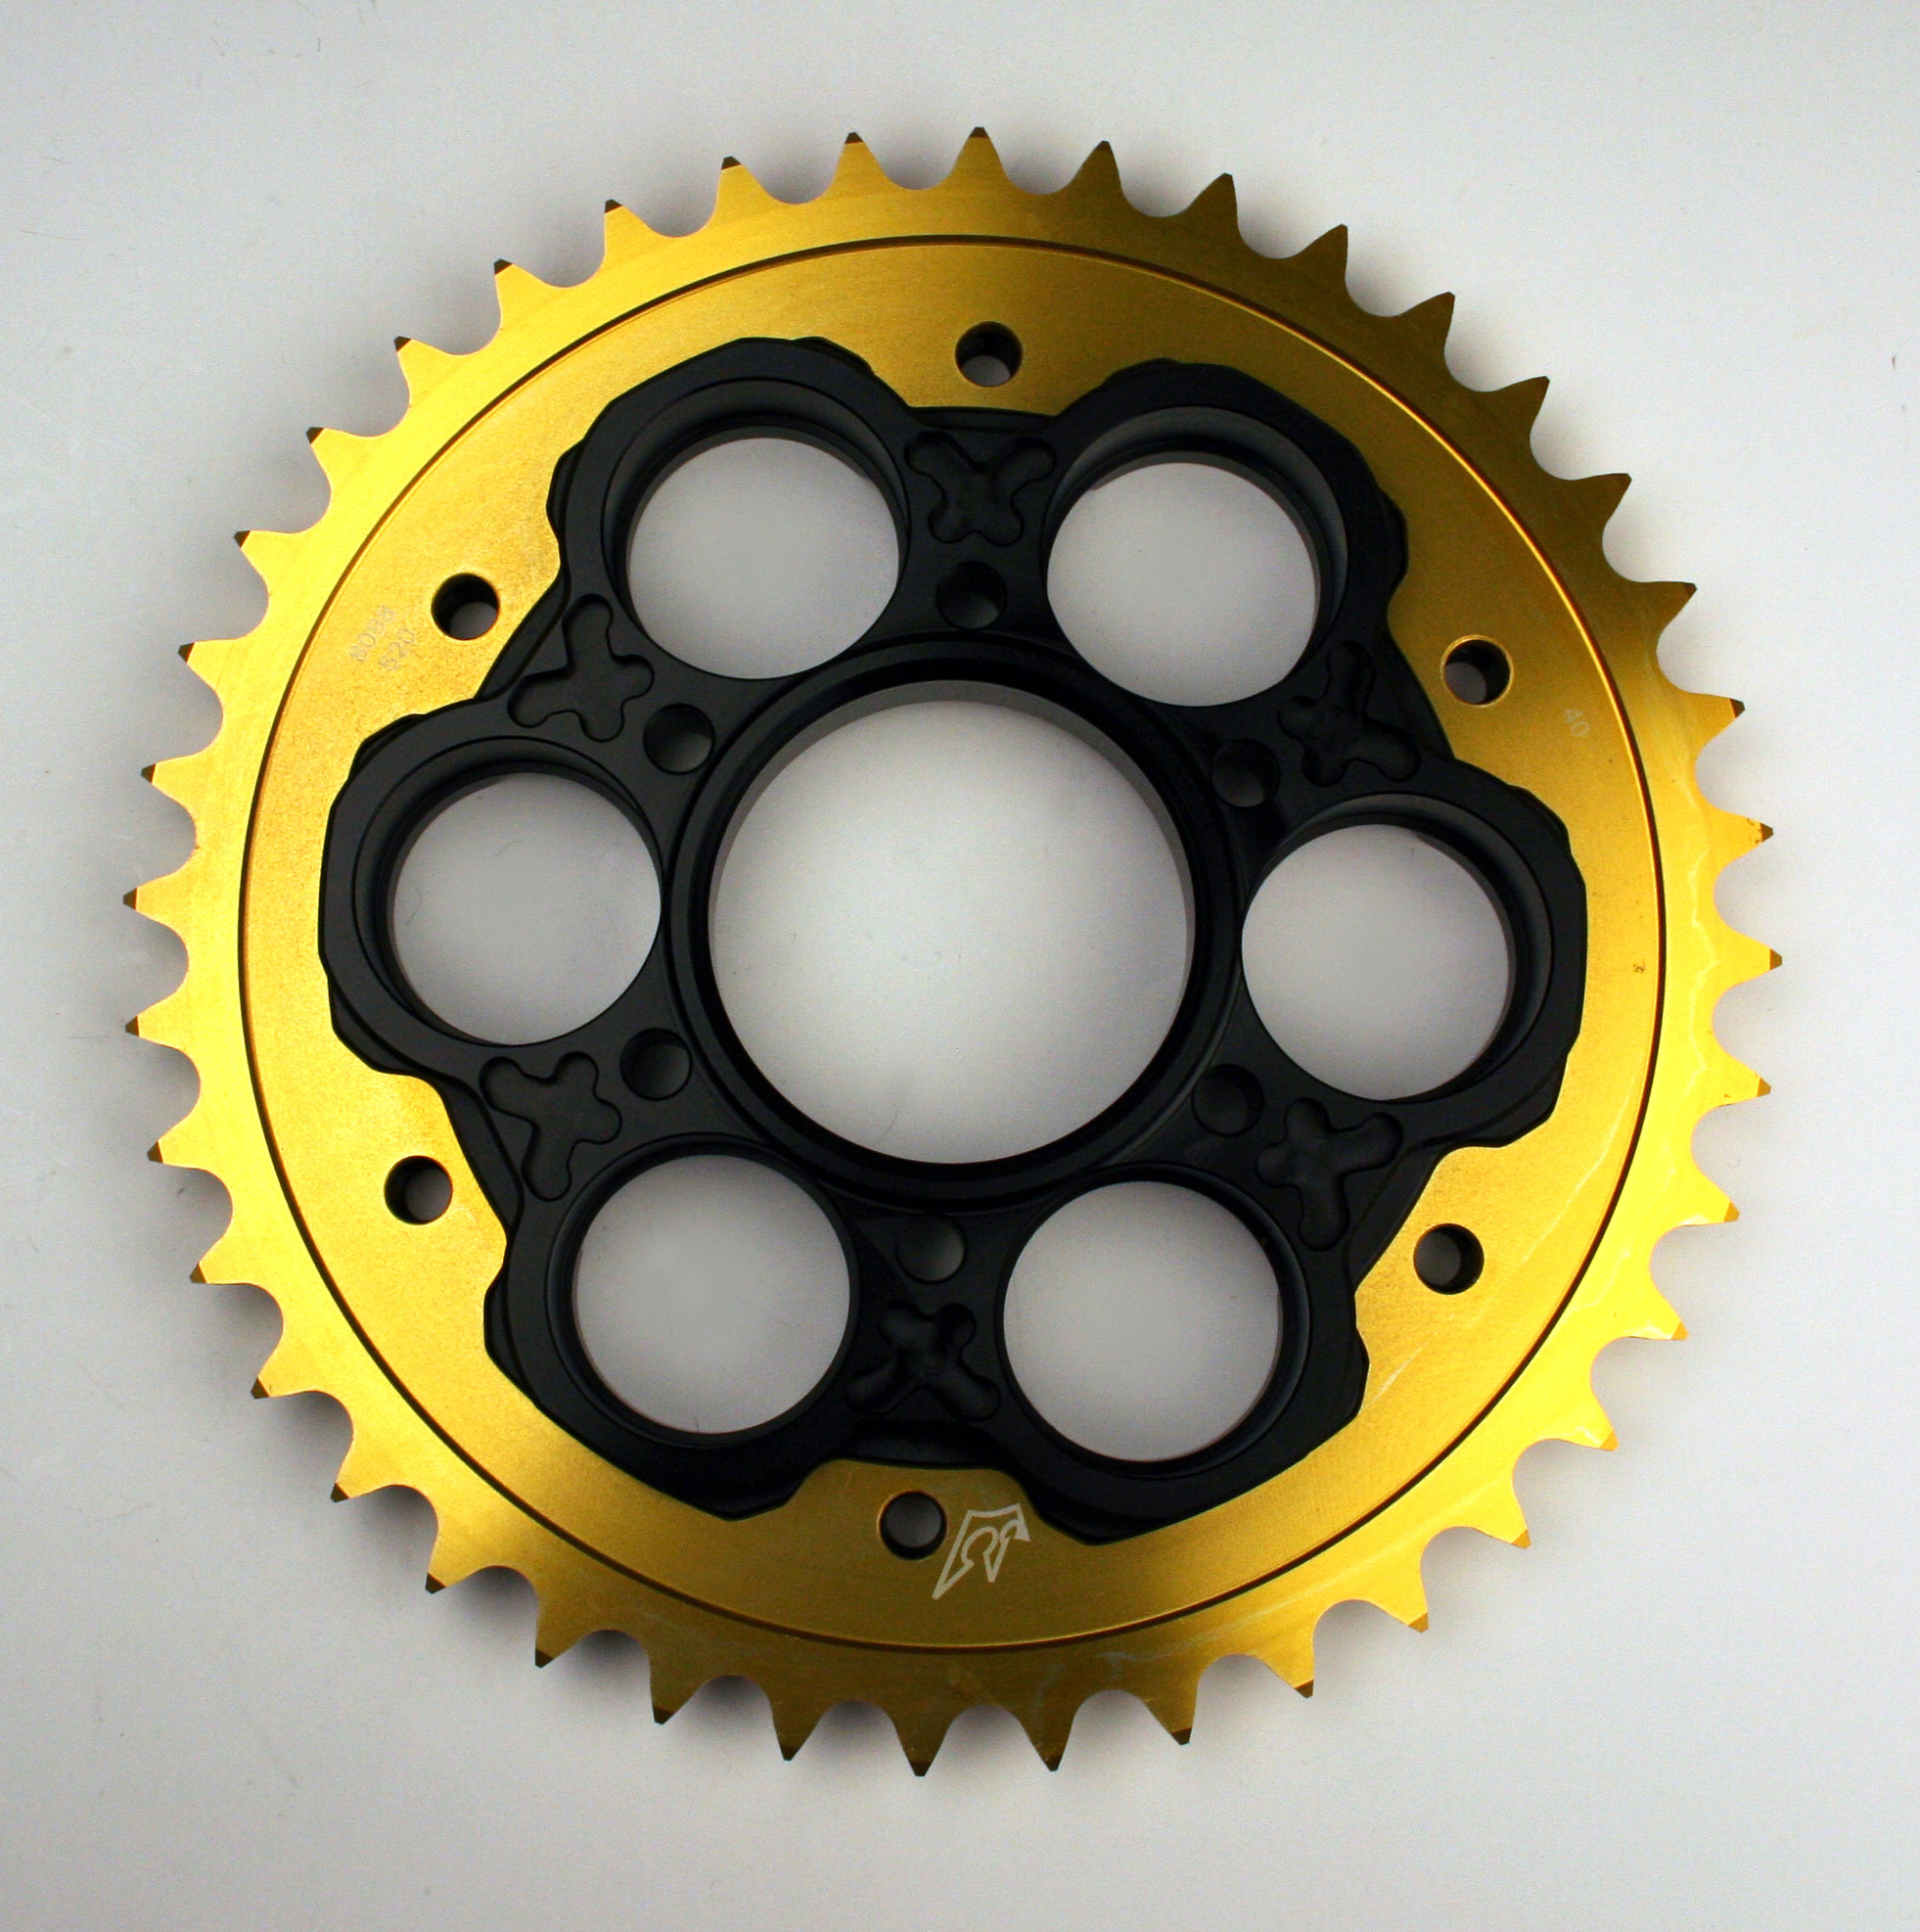 Driven Racing Large 6 Hole Quick Change Sprocket Carrier